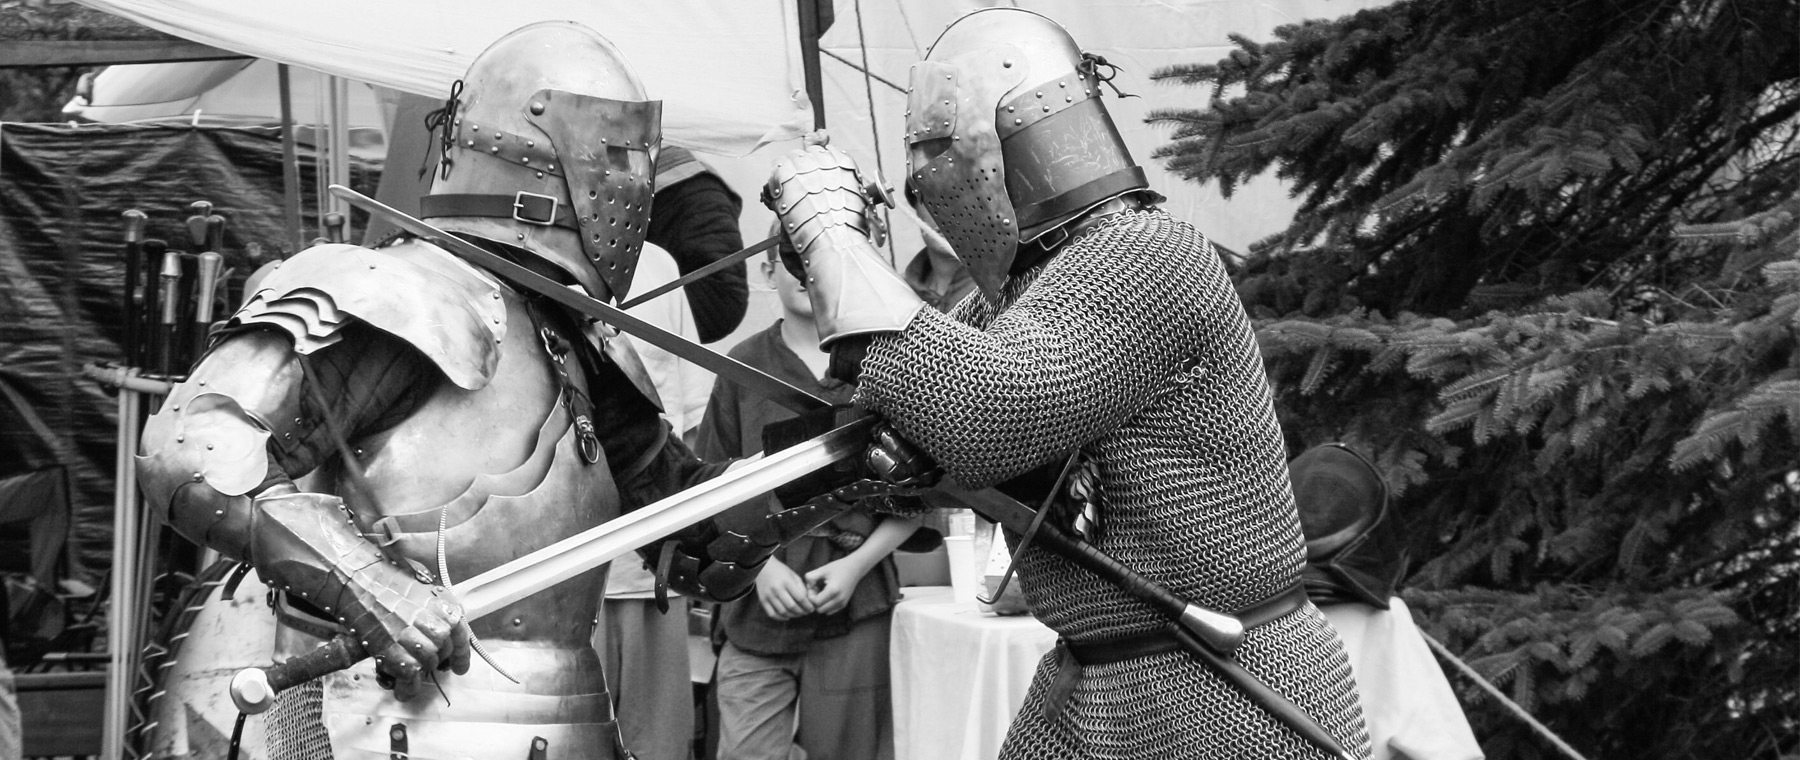 In celebrating Osgoode Medieval Fest's 10 yrs, are we sanitizing the past?